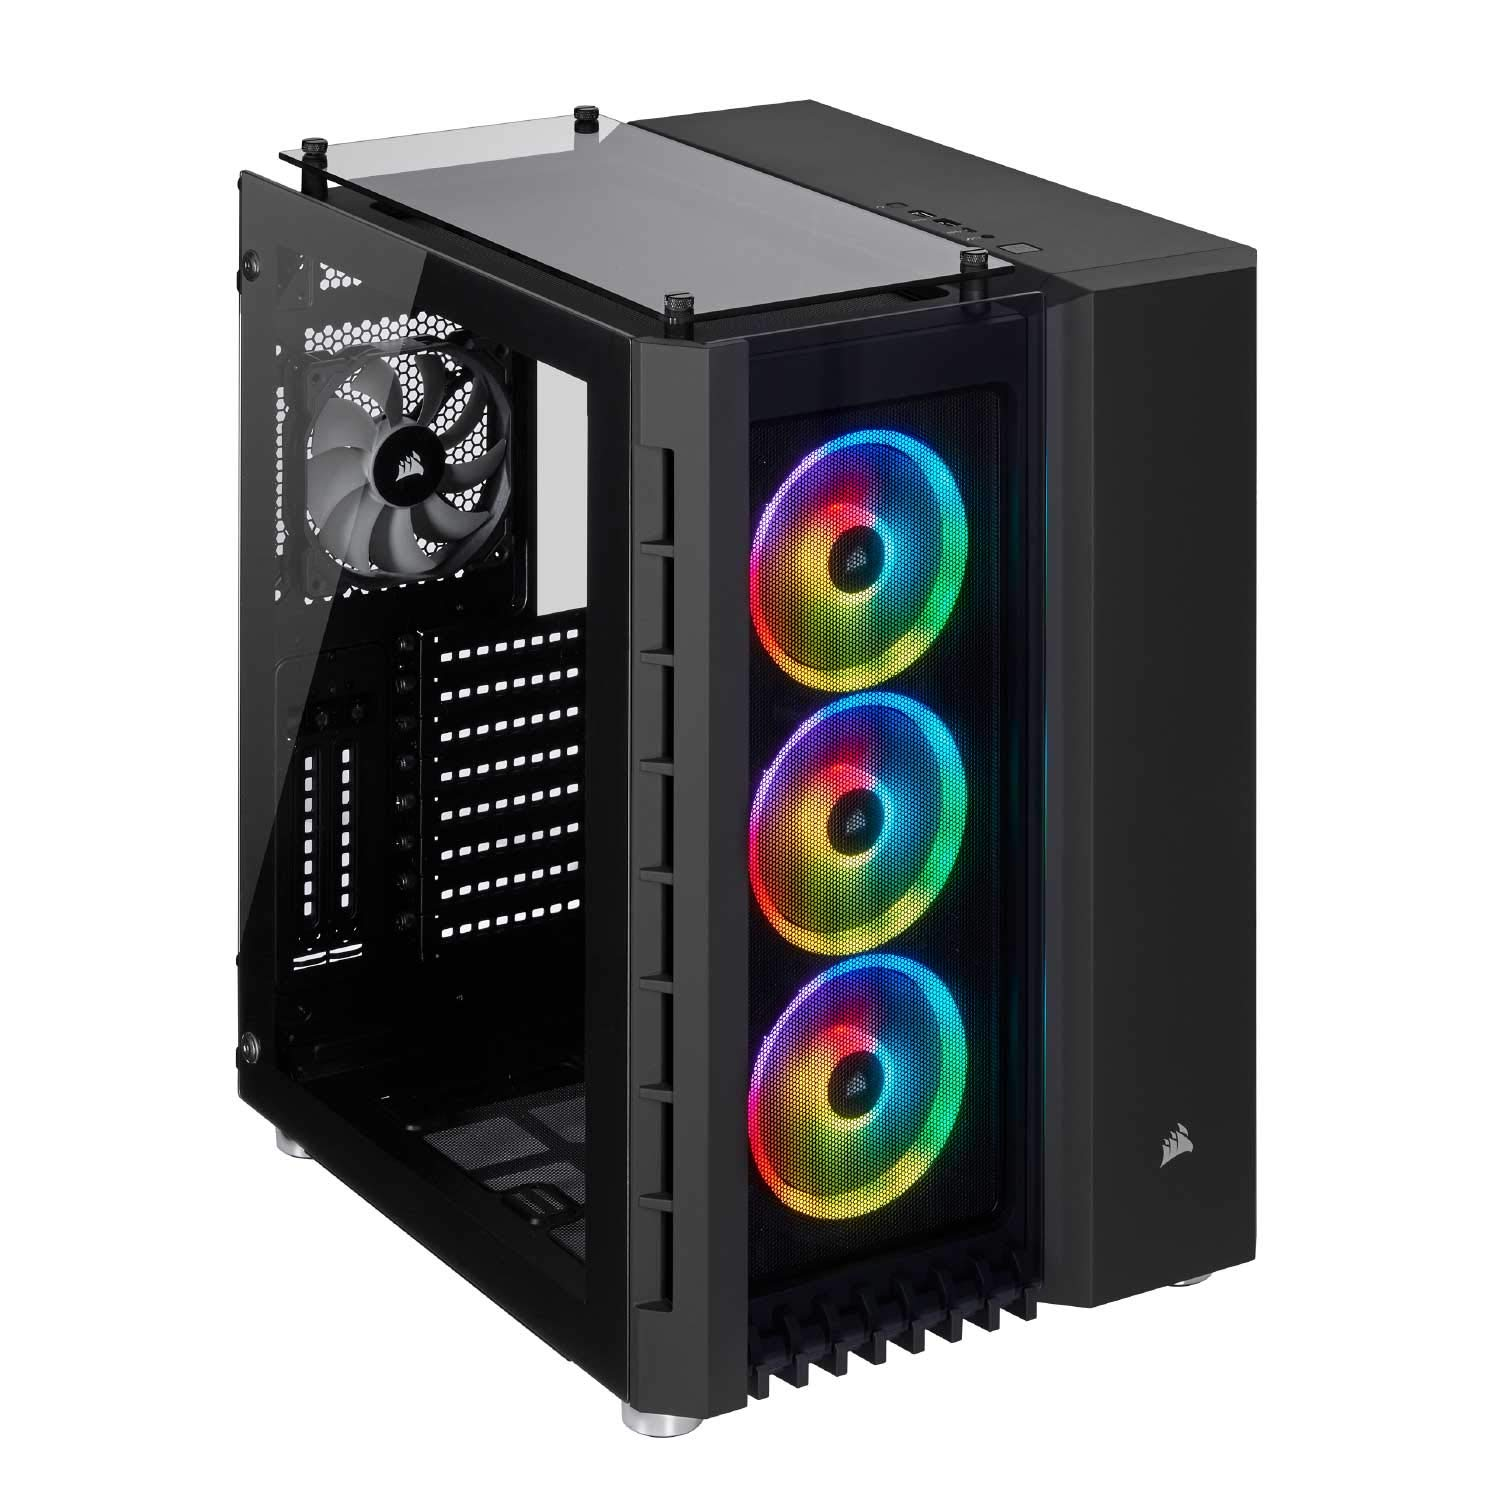 CORSAIR Crystal Series 680X RGB High Airflow Tempered Glass ATX Smart Case, Black